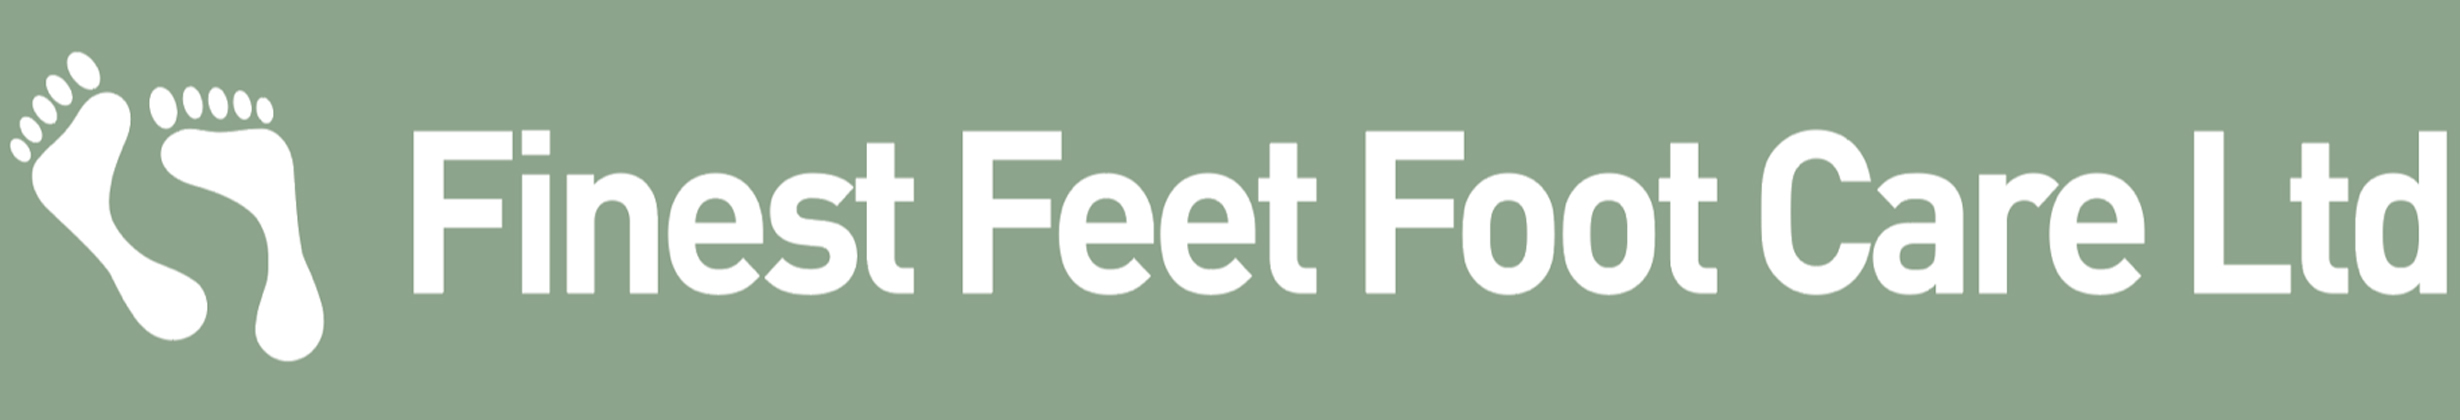 Finest Feet Footcare